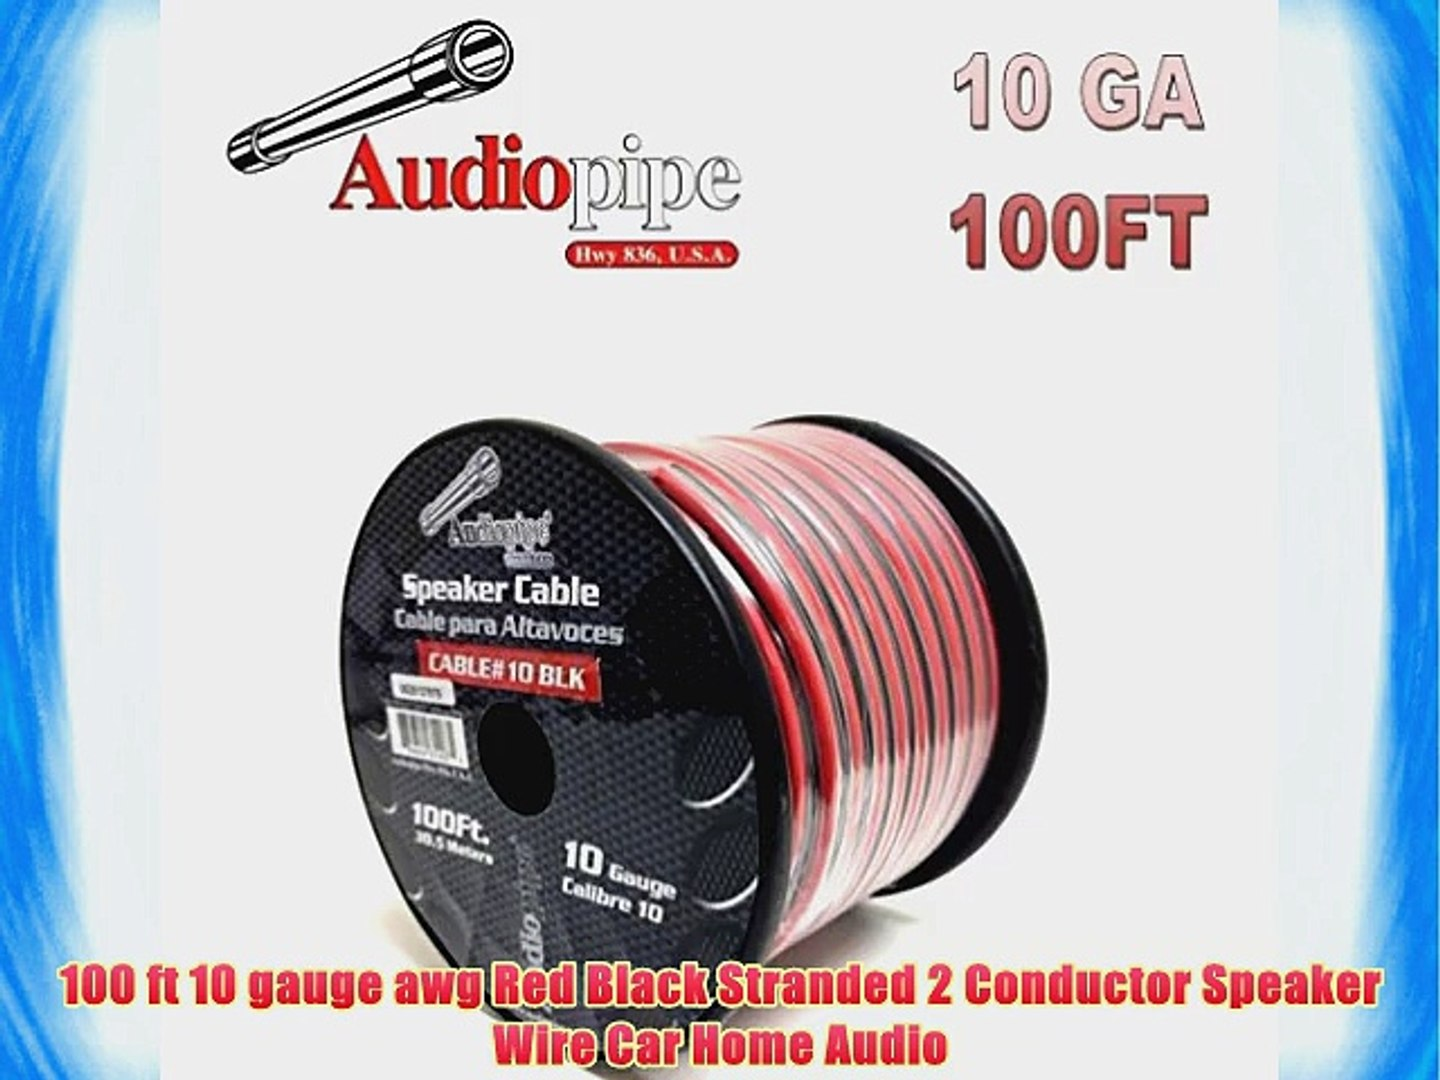 100ft In Wall 18 2 18 AWG Gauge 2 Conductor Speaker Wire Cable CL2